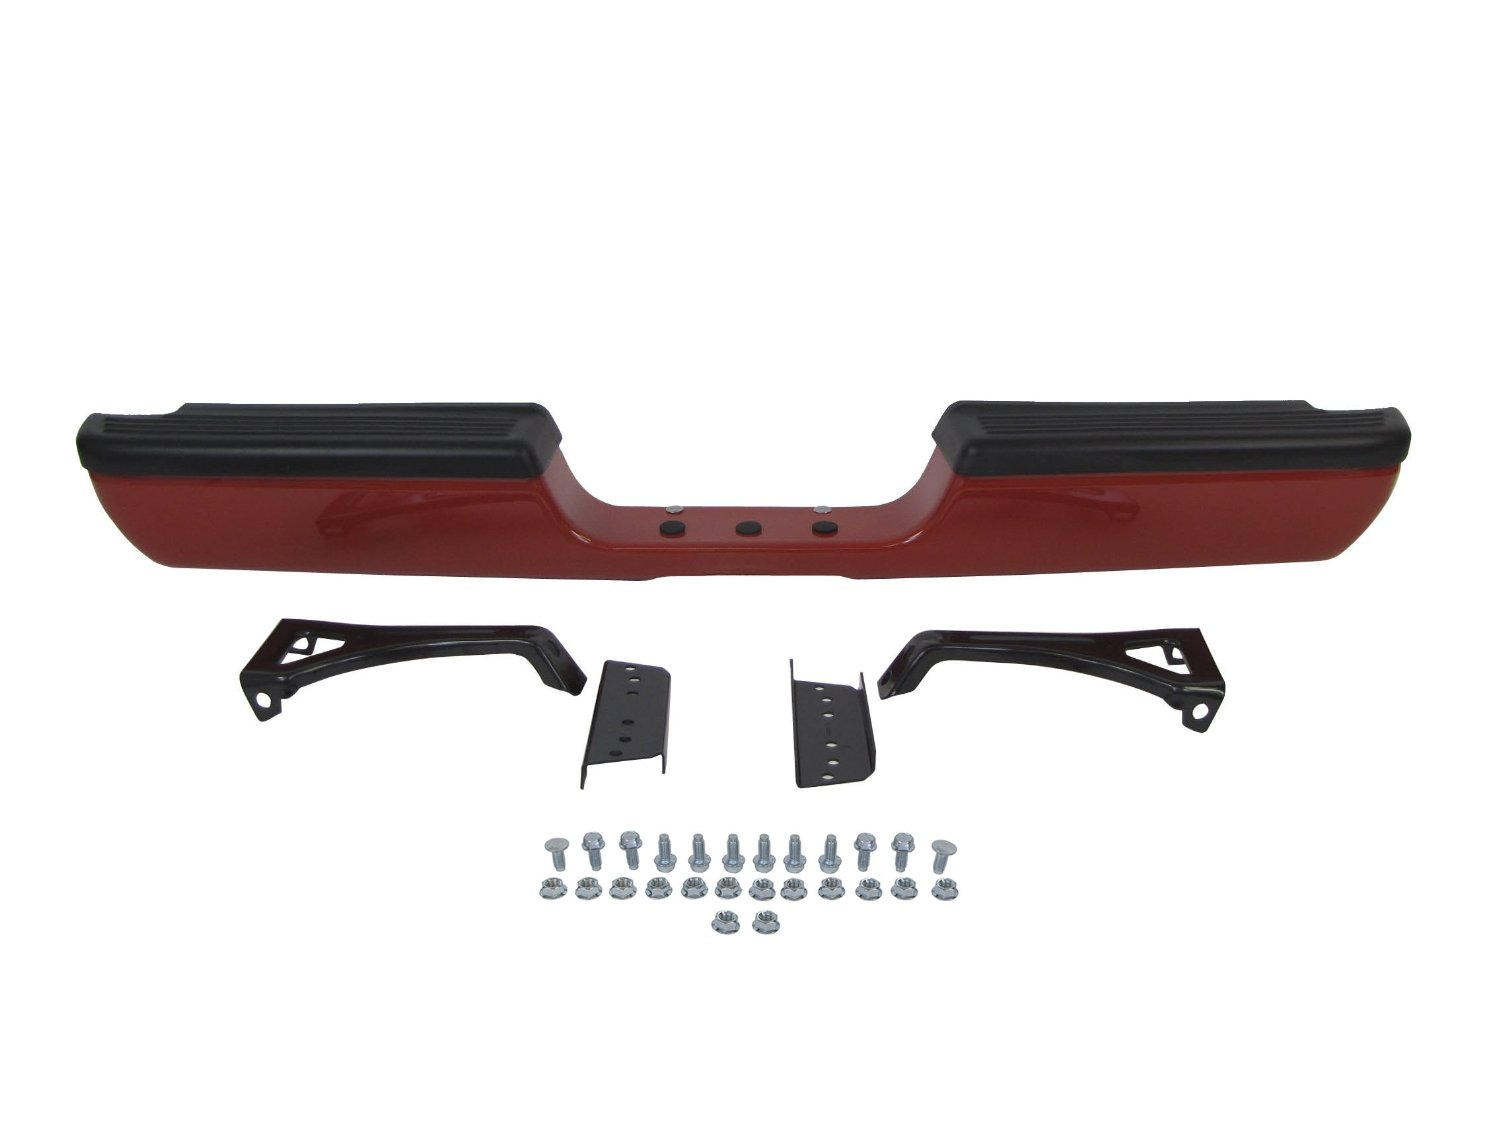 Painted Flame Red Clear Rear Step Bumper Full Assy (With TOP Pad, Outer Bracket, Inner Bracket, Hitch Bar, Plug, Screws) 94-01 Dodge Pickup Ram 1500 / 94-02 RAM 2500 3500 Pickup Ch1102332